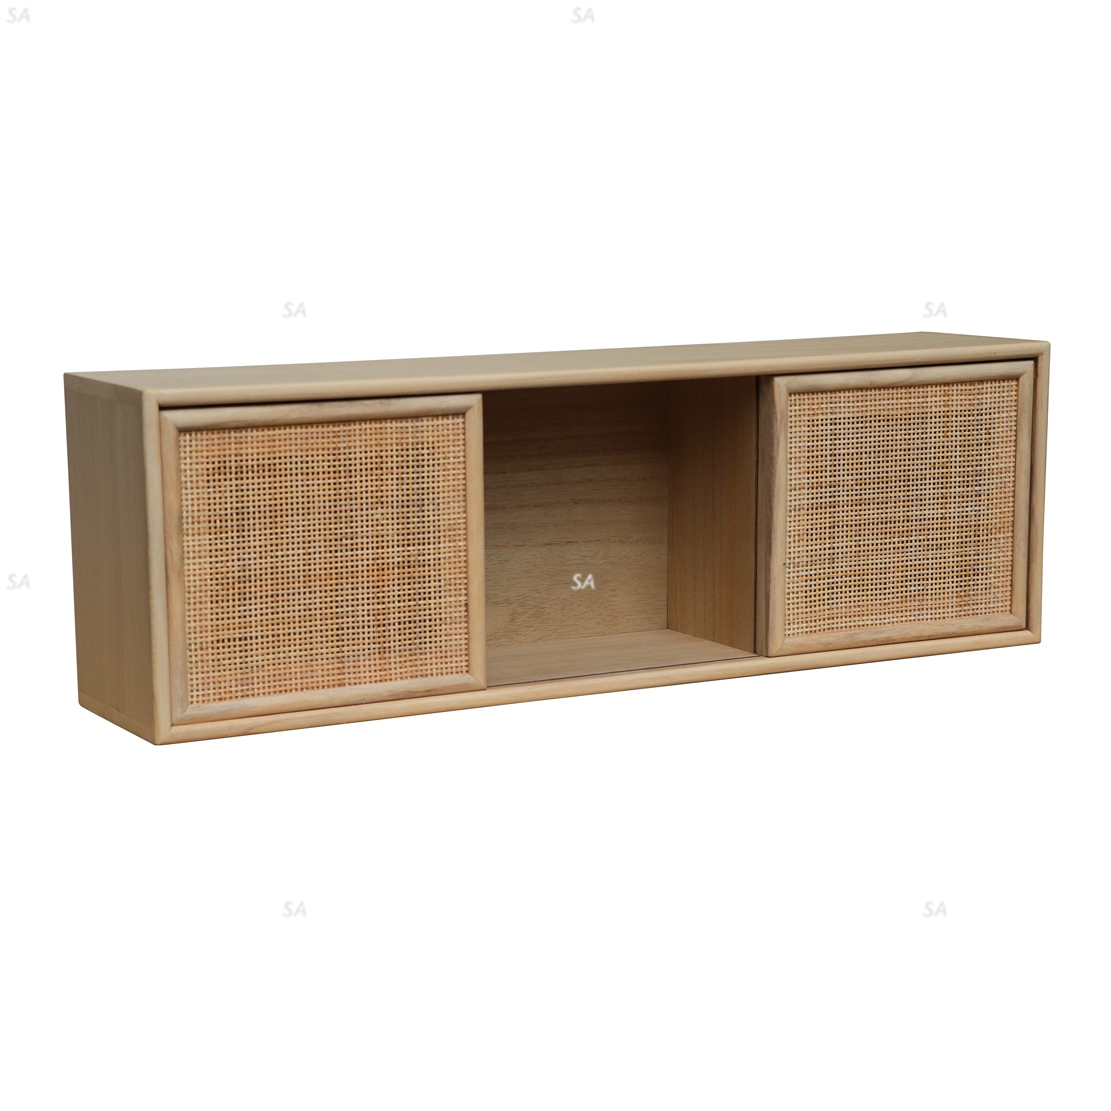 Minimalist Natural Rattan Coffee Table with Rack